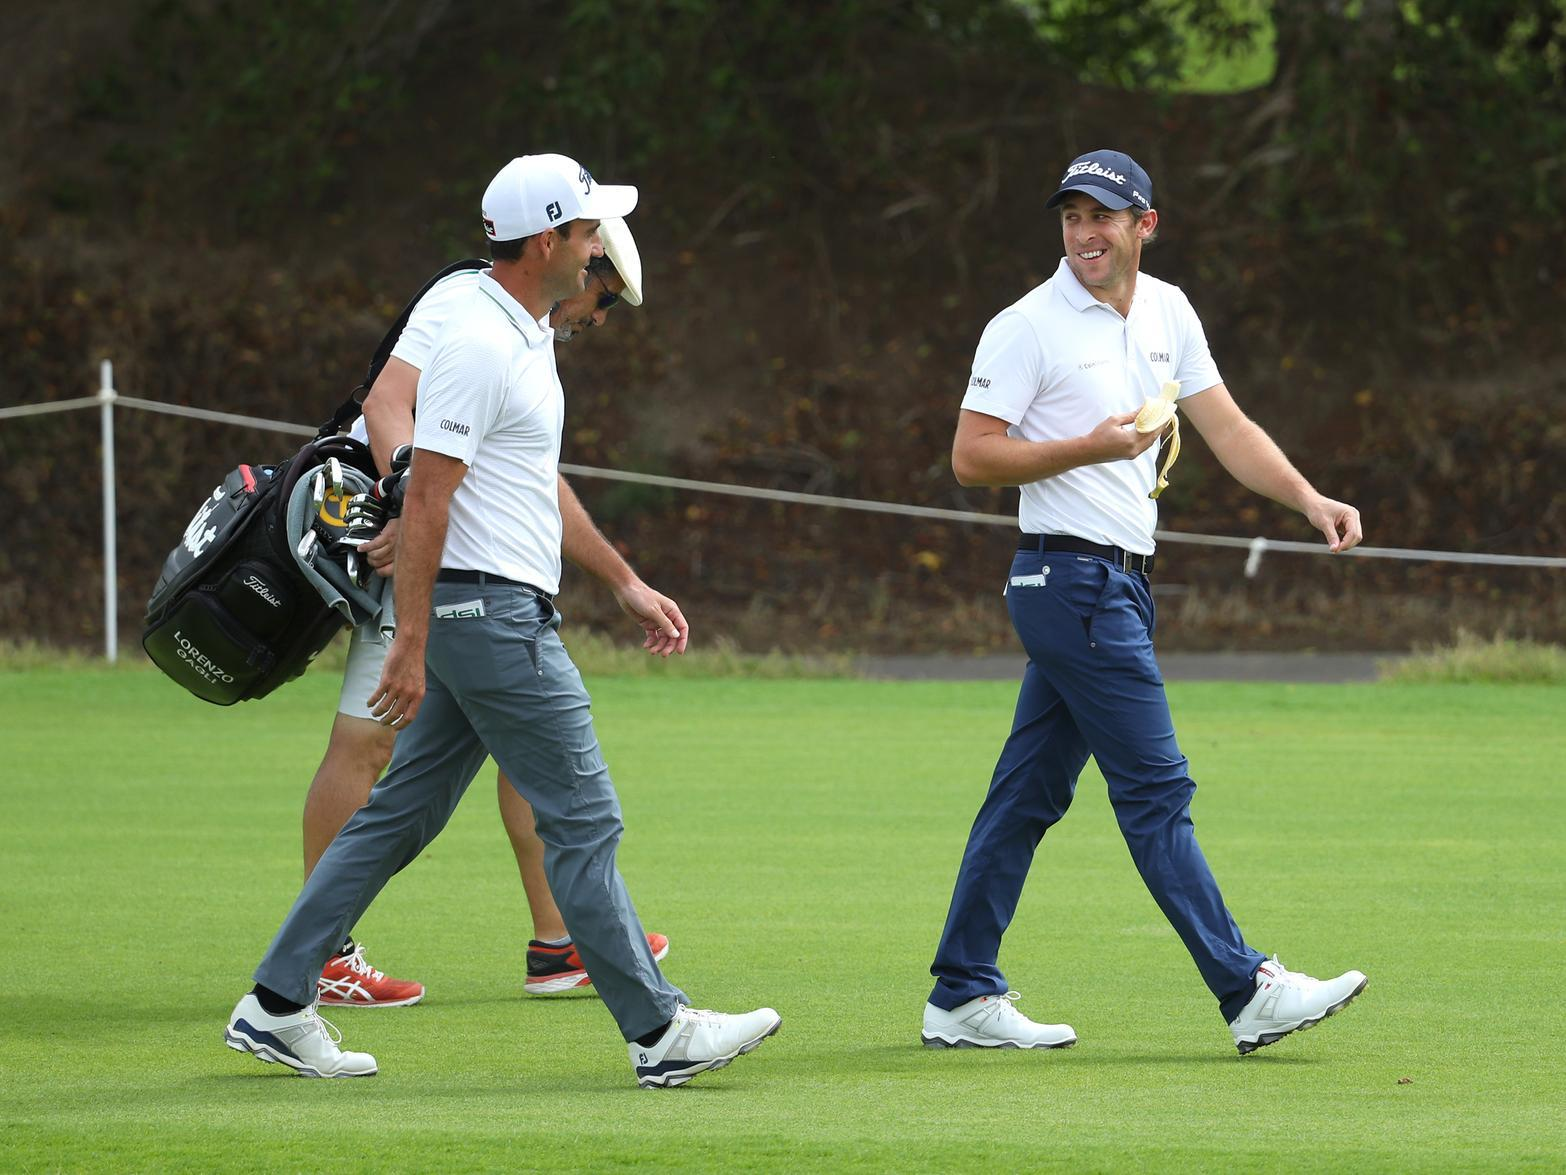 Italian duo reinstated in Oman Open after getting all clear over coronavirus